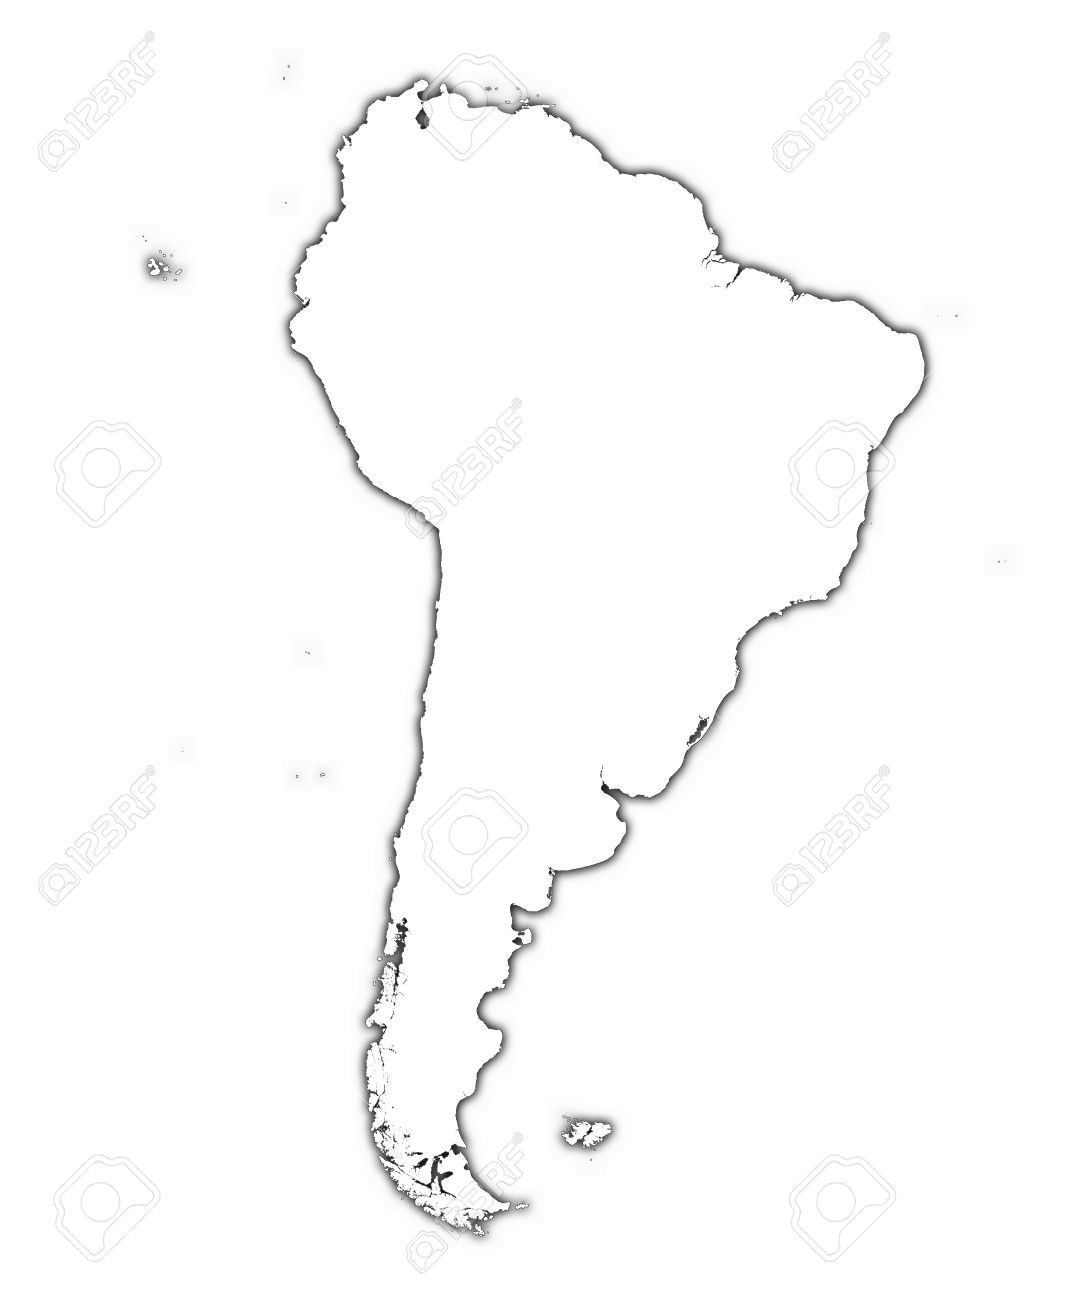 South America Outline Map With Shadow. Detailed, Mercator Projection ...